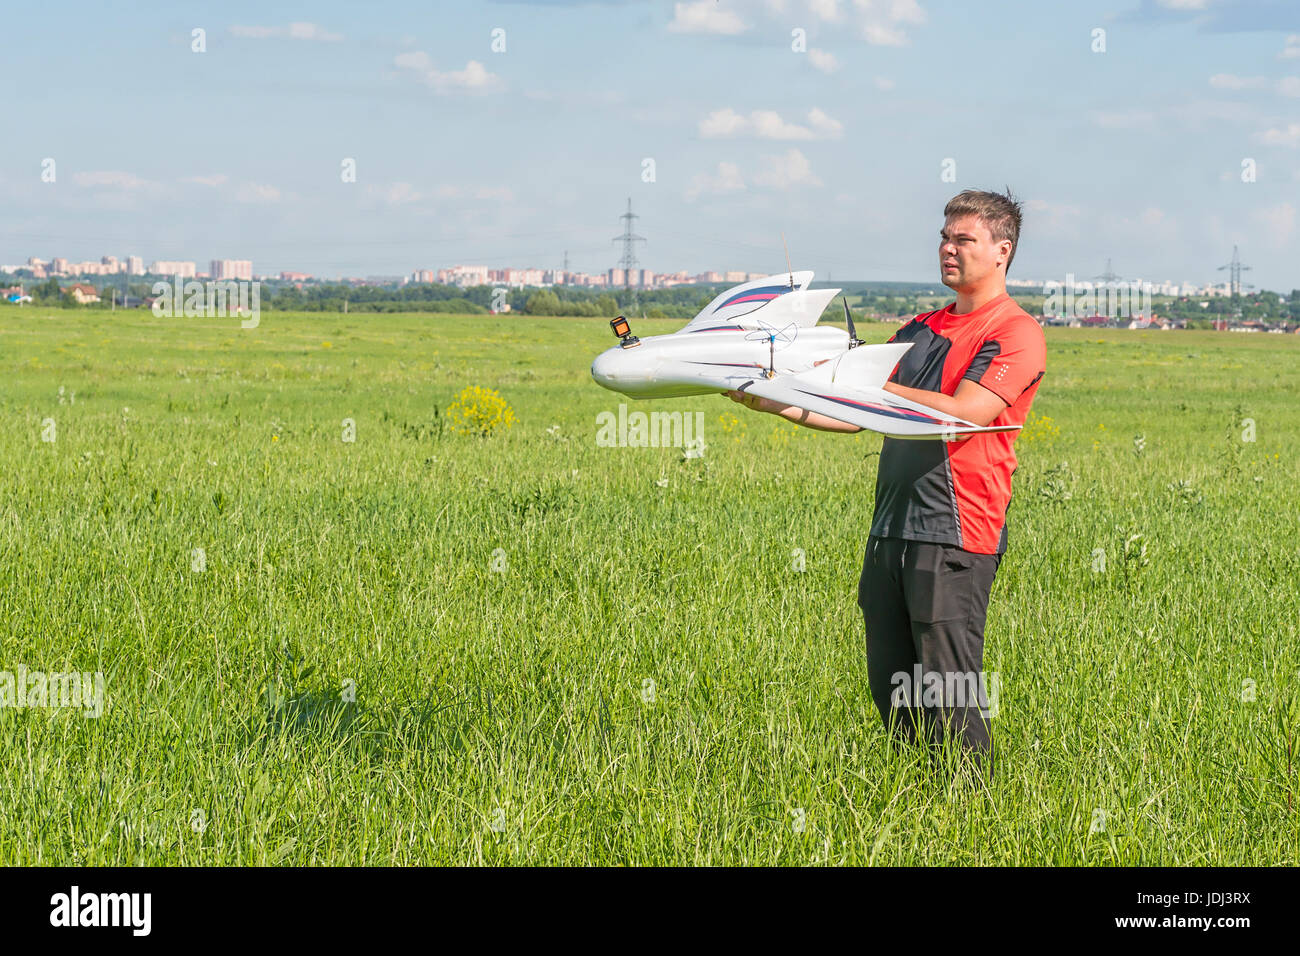 Man with rc fpv model wing. Electronics, hobby, aeromodelling concept - Stock Image